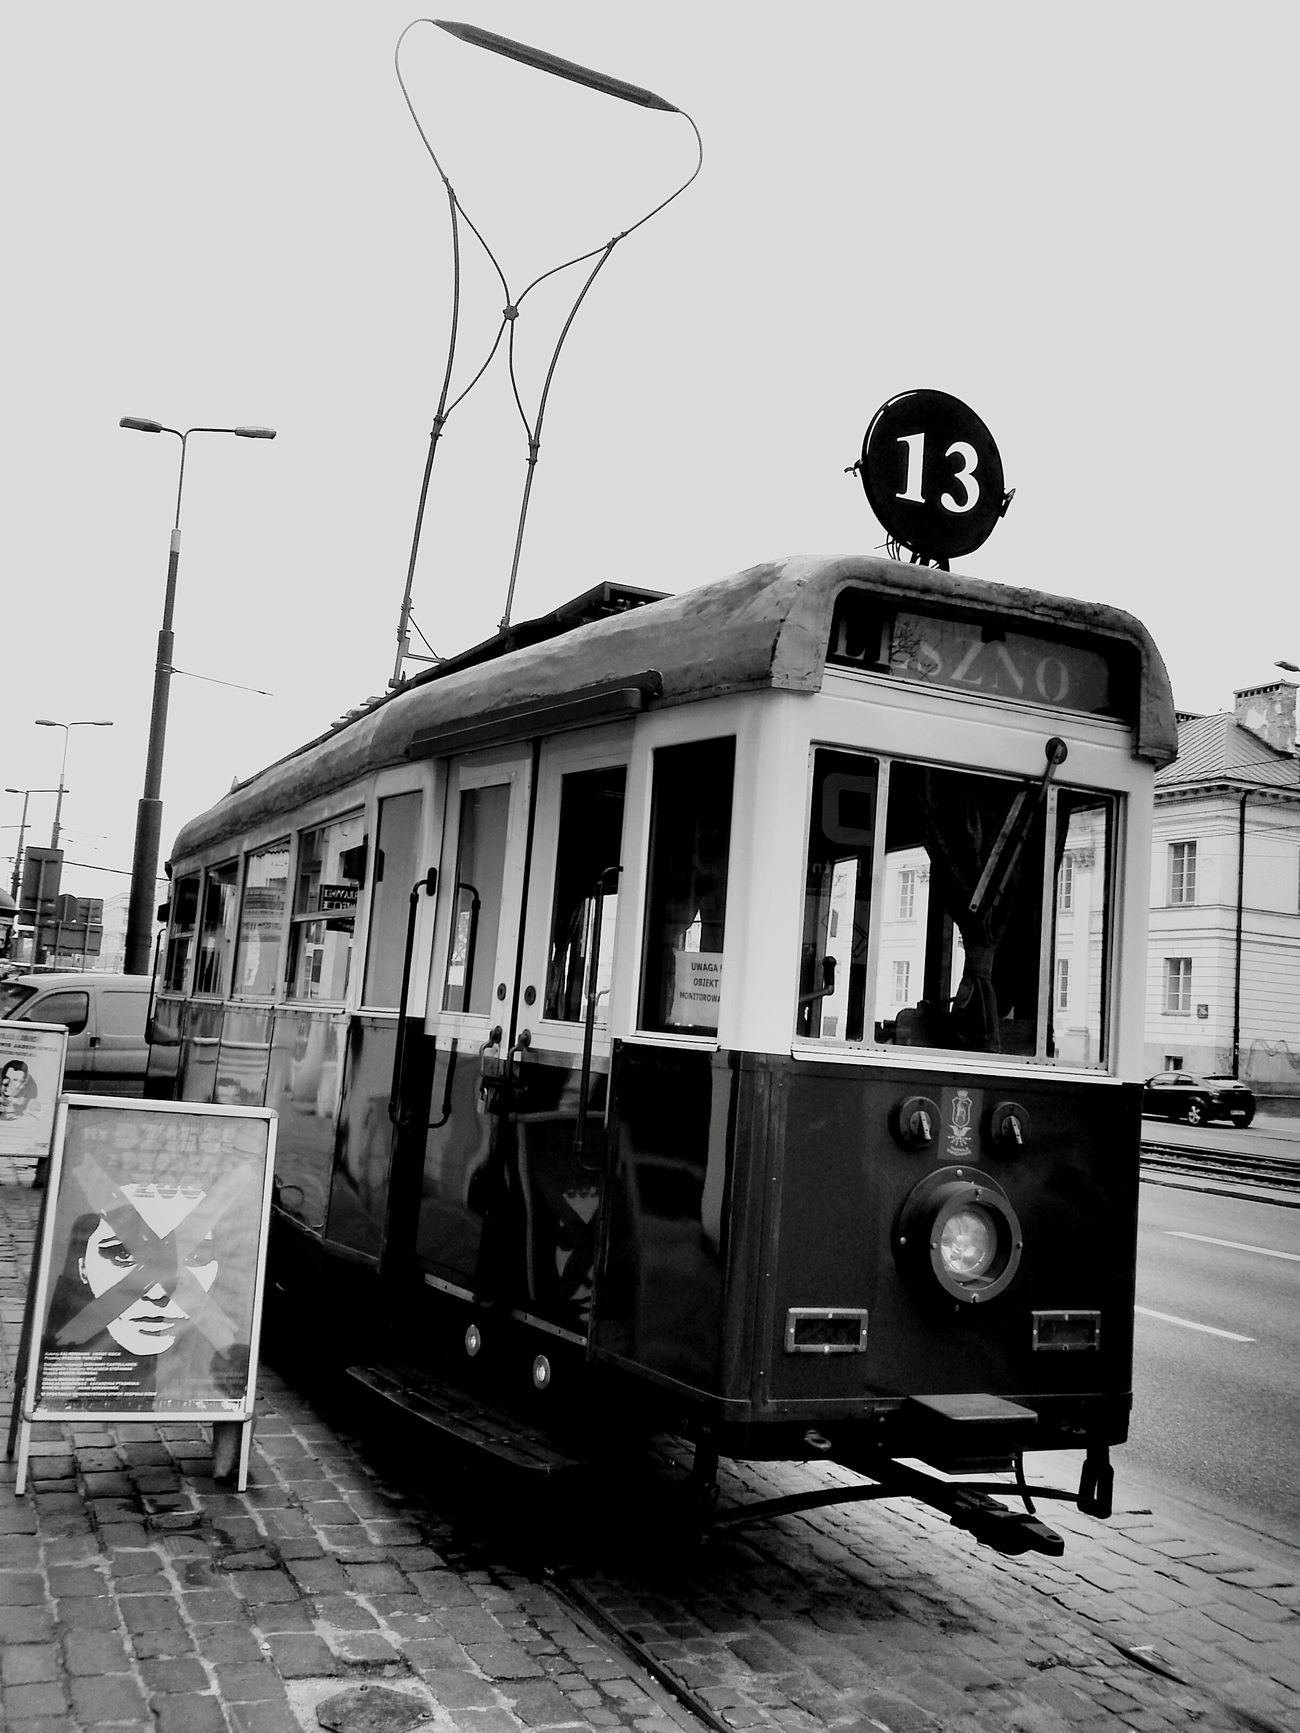 Tram Old Tram Classic Relict On The Road Streetphotography Streetphoto_bw Streetphotography_bw Blackandwhite Monochrome